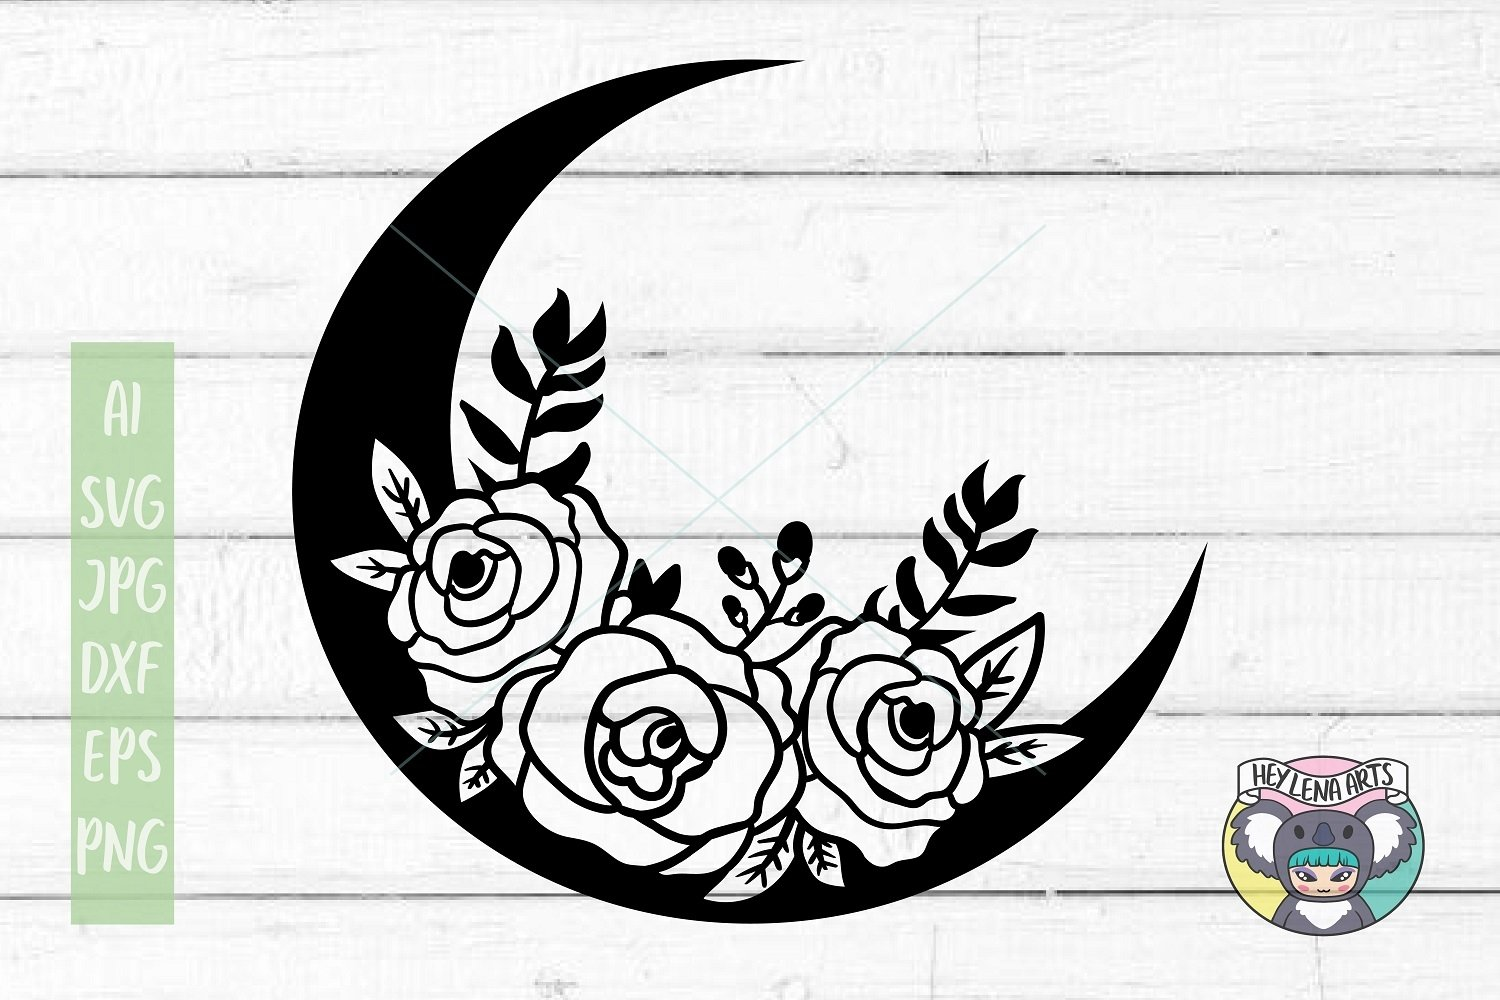 Moon svg, Floral Wreath svg, Files for Cricut, Cut File, dxf example image 1